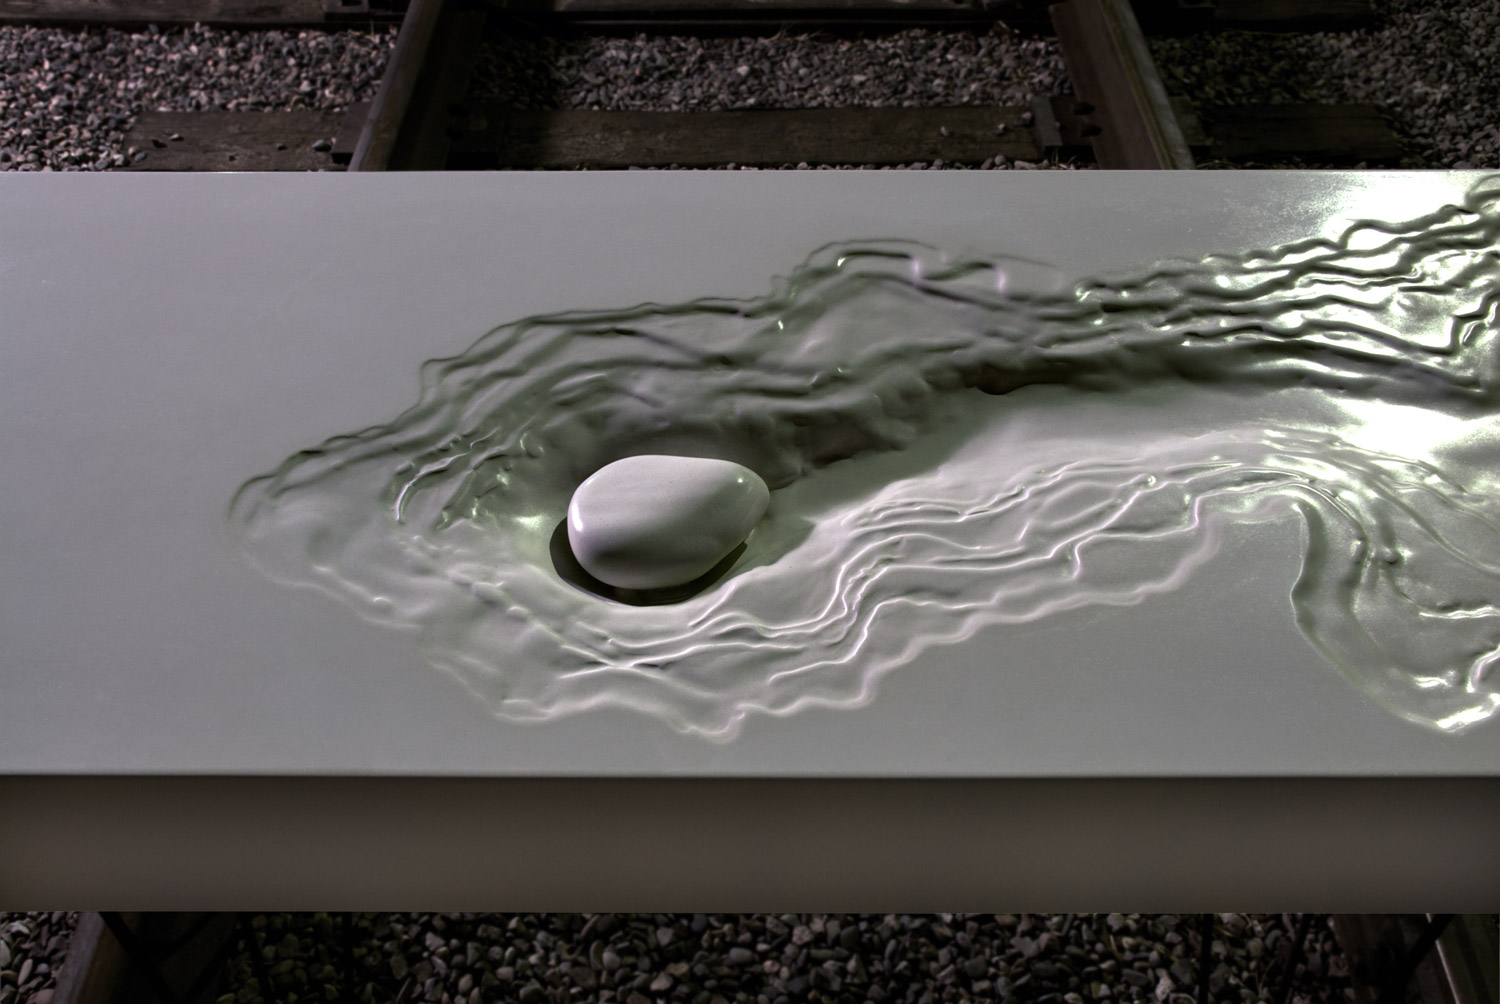 The Concrete Erosion Sink is an original design by Brandon Gore. The sink is a layered, topographic design made with white GFRC